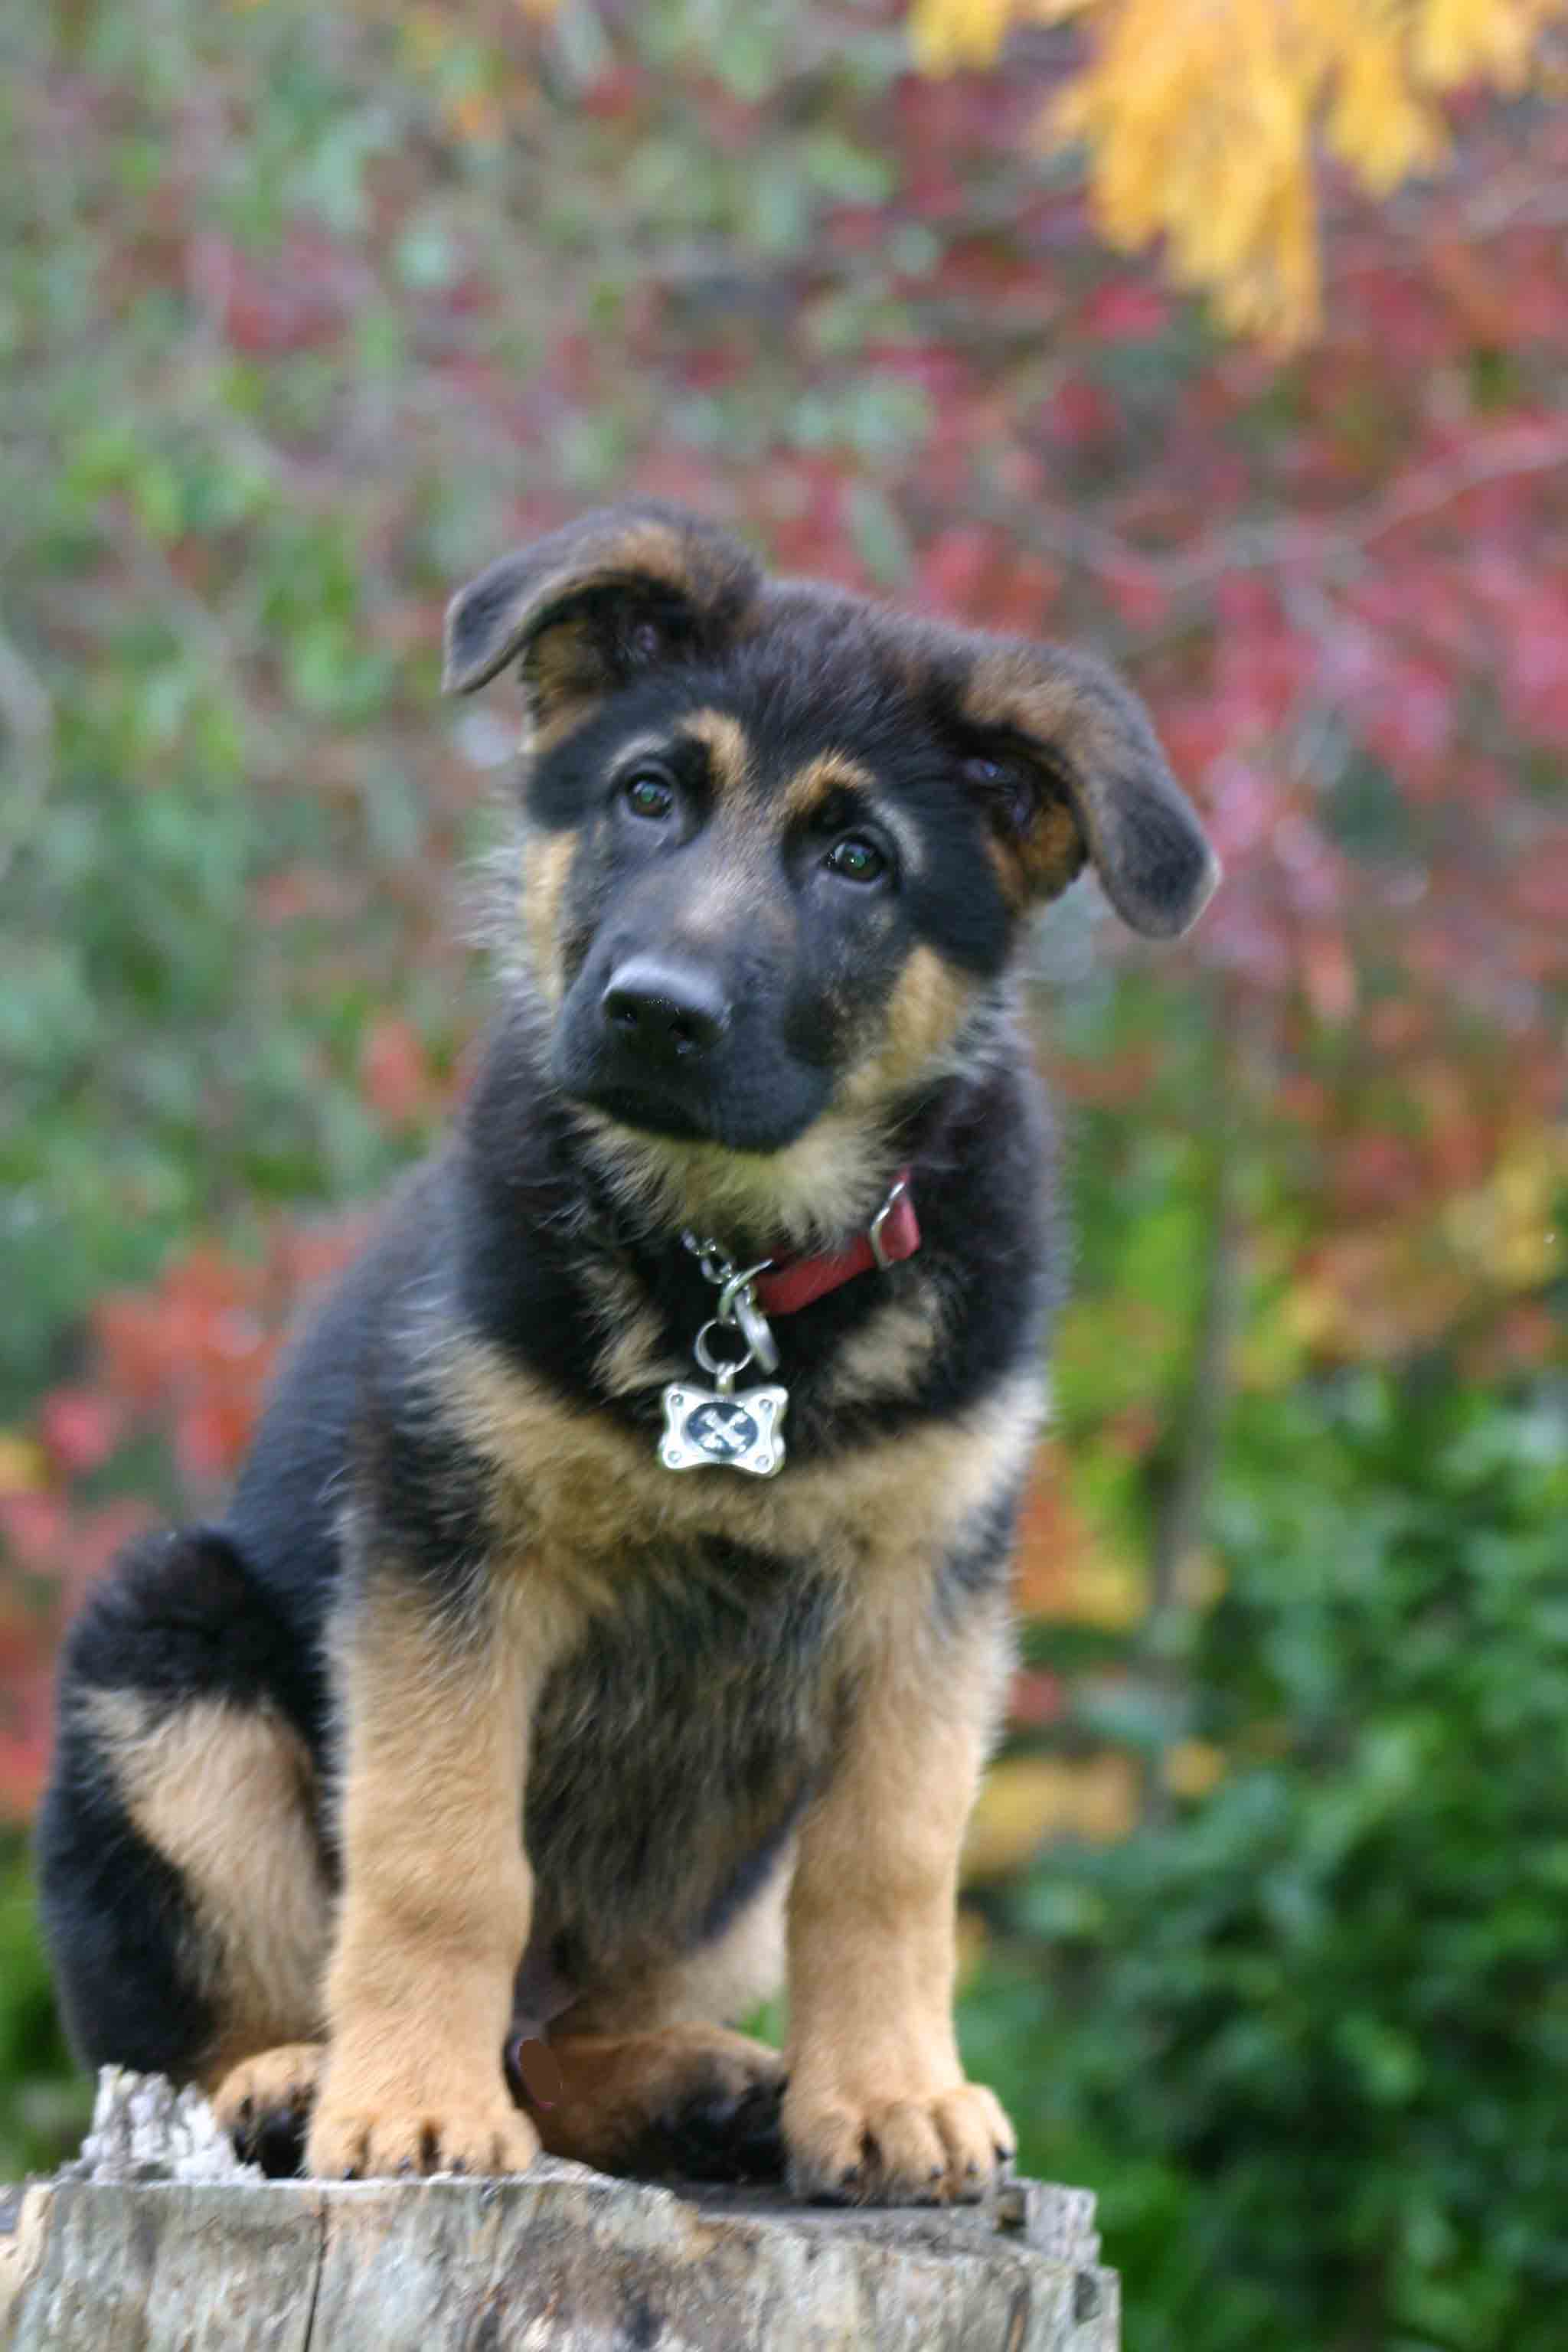 When do the ears of German shepherds get up Tips of dog breeders